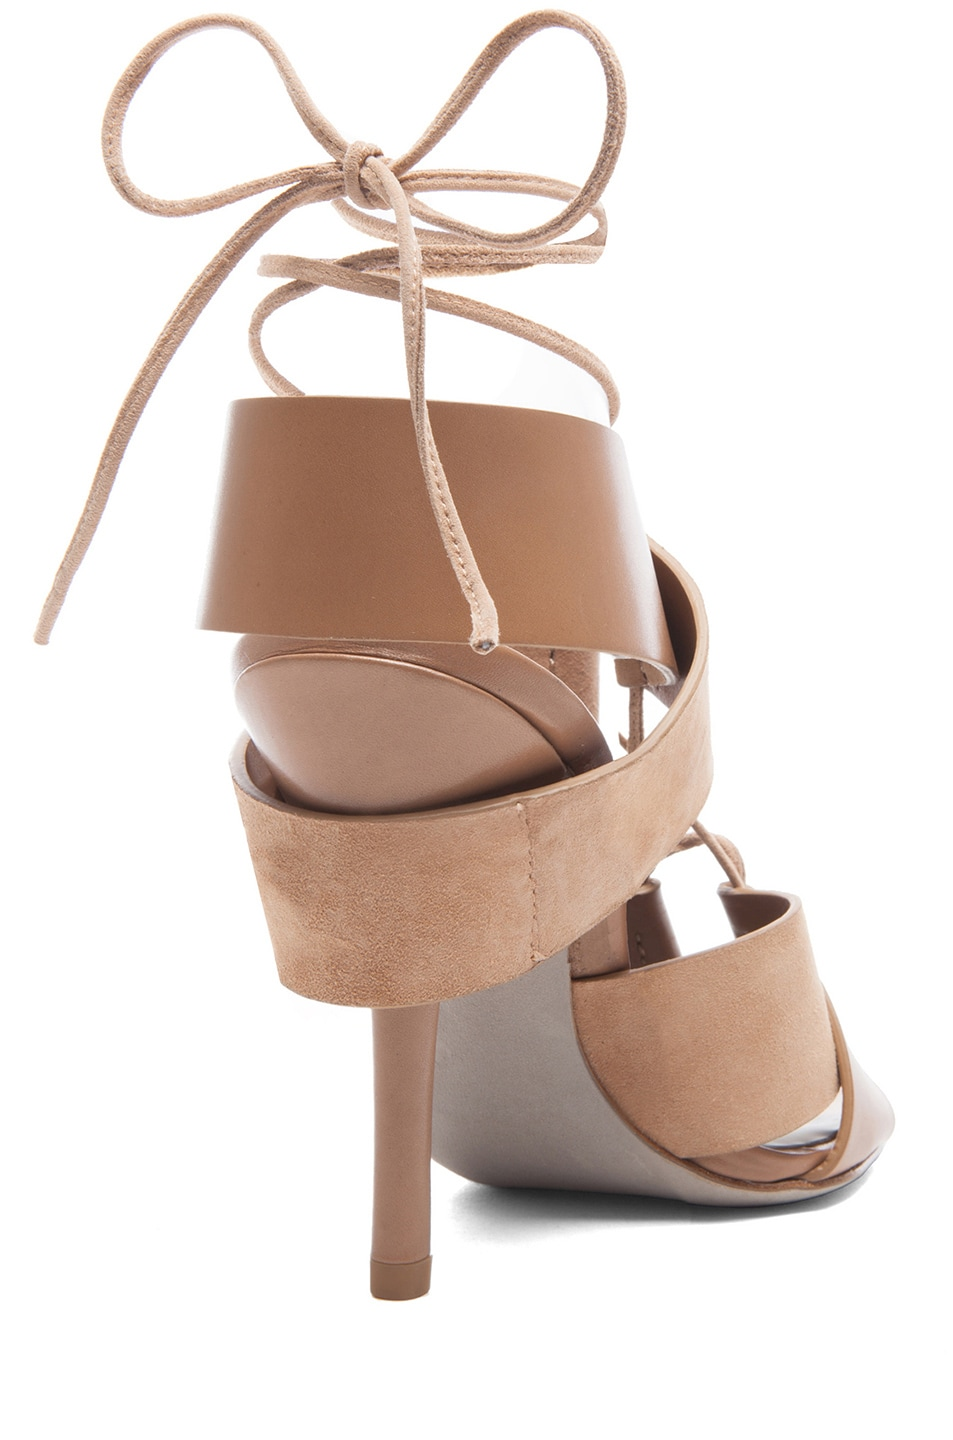 Image 3 of Alexander Wang Malgosia Leather & Suede Sandals in Truffle